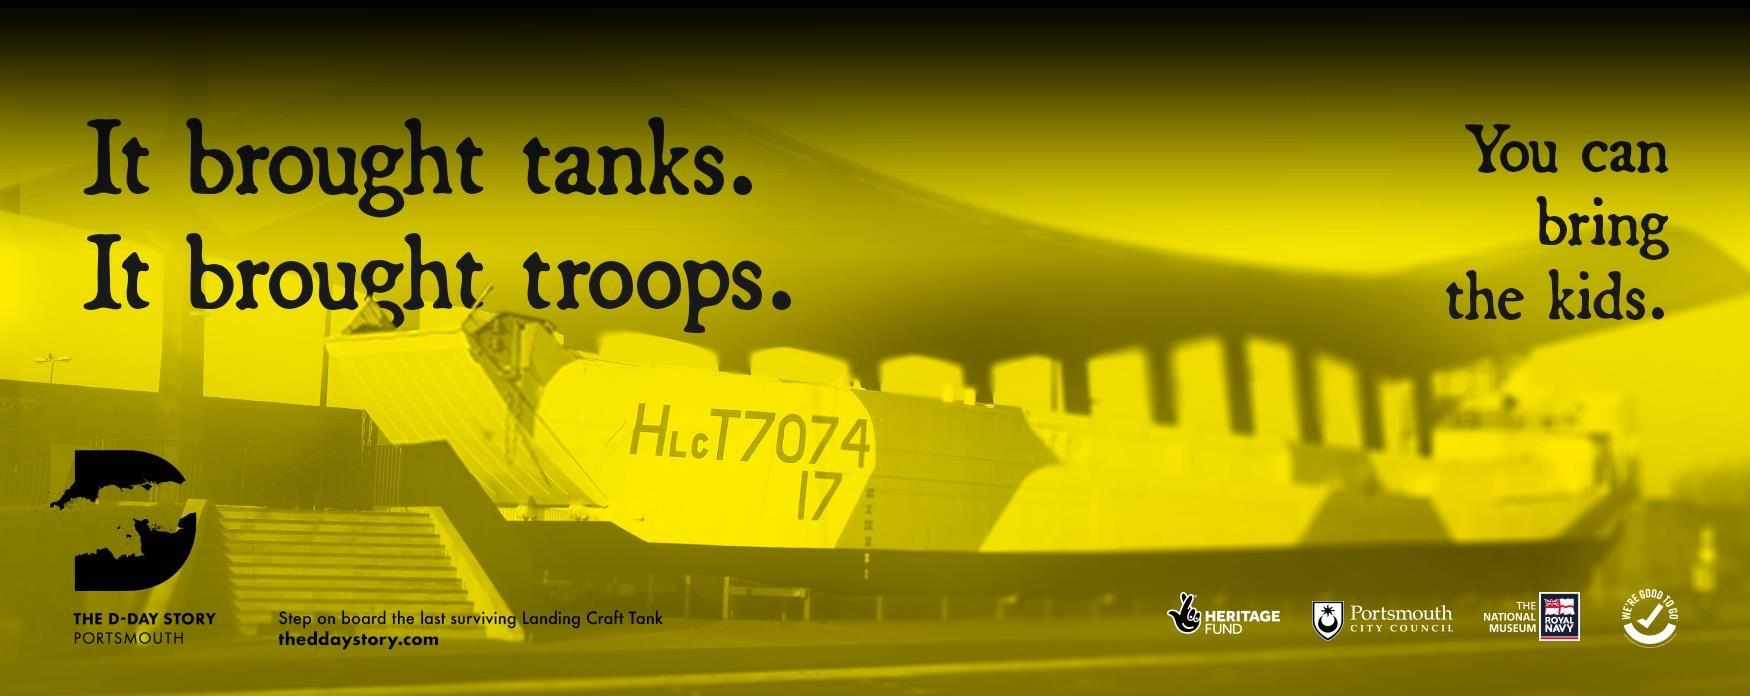 Image of the LCT 7074 with the words: It brought tanks, it brought troops, you can bring the kids